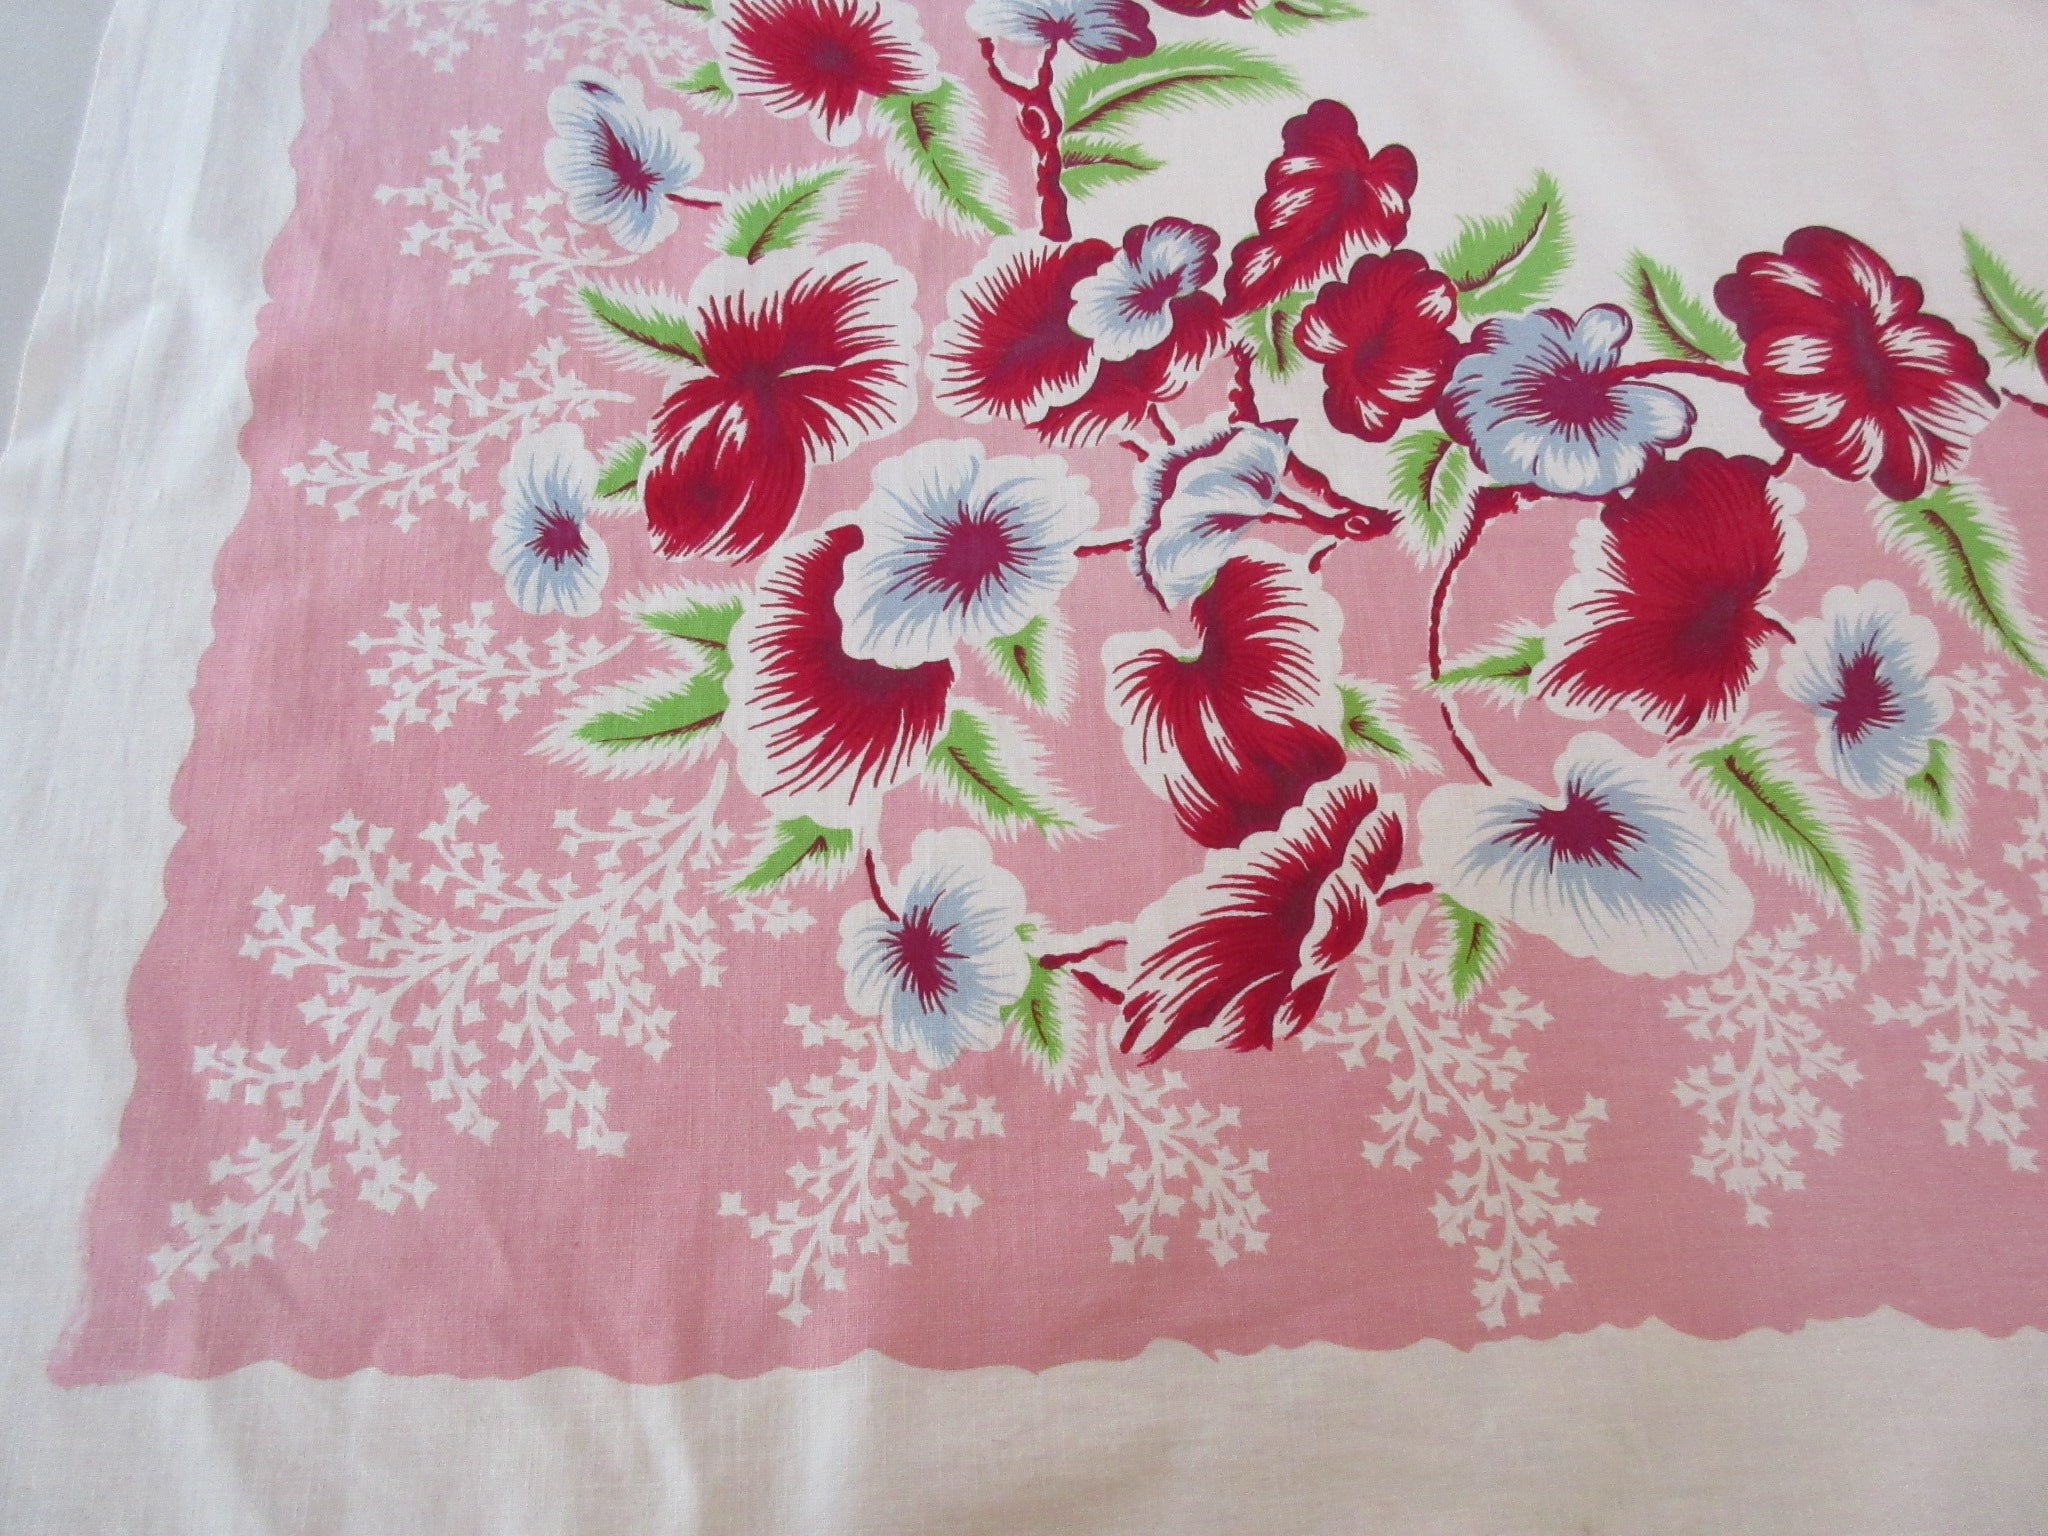 Red Green Tropical Flowers on Pink Floral Vintage Printed Tablecloth (51 X 51)